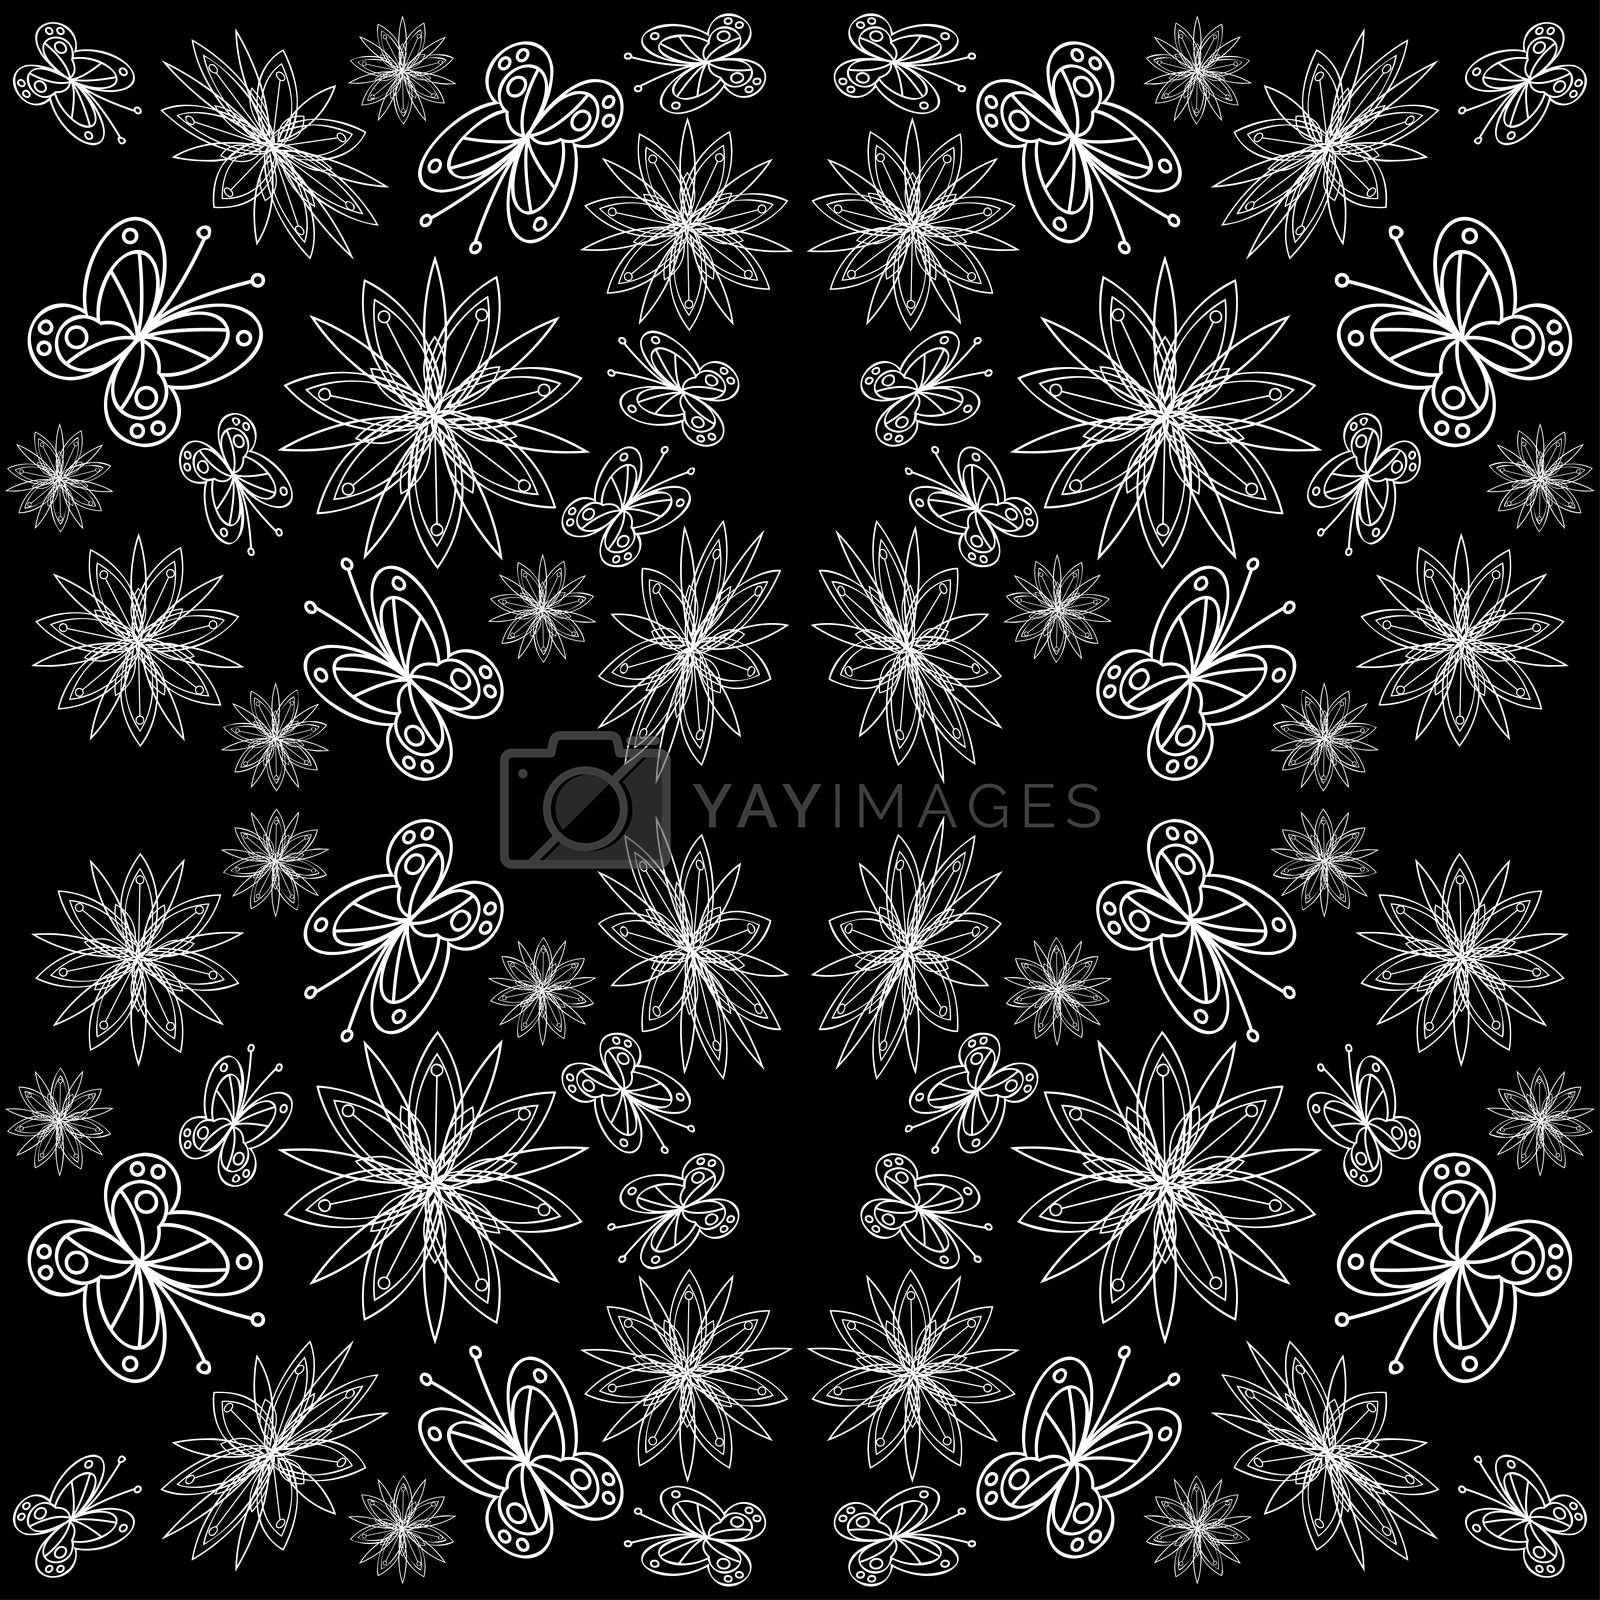 Linocut style meadow flowers - seamless pattern. Wildflowers in modern cutout style isolated on background, vector illustration for textile, wallpaper.